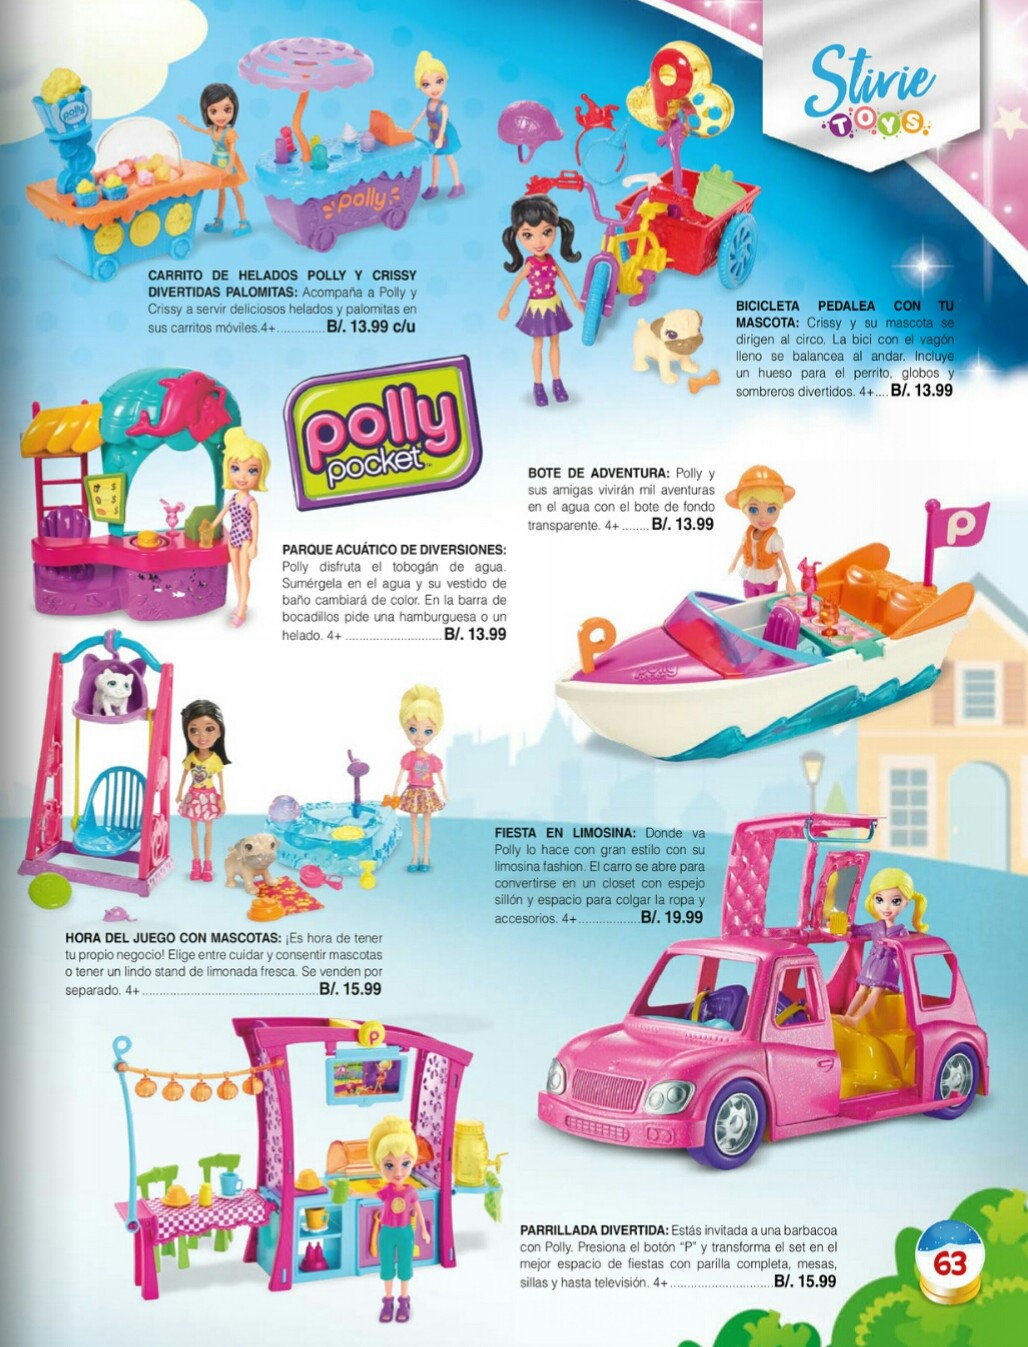 Catalogo juguetes Stivie toys 2018 p63